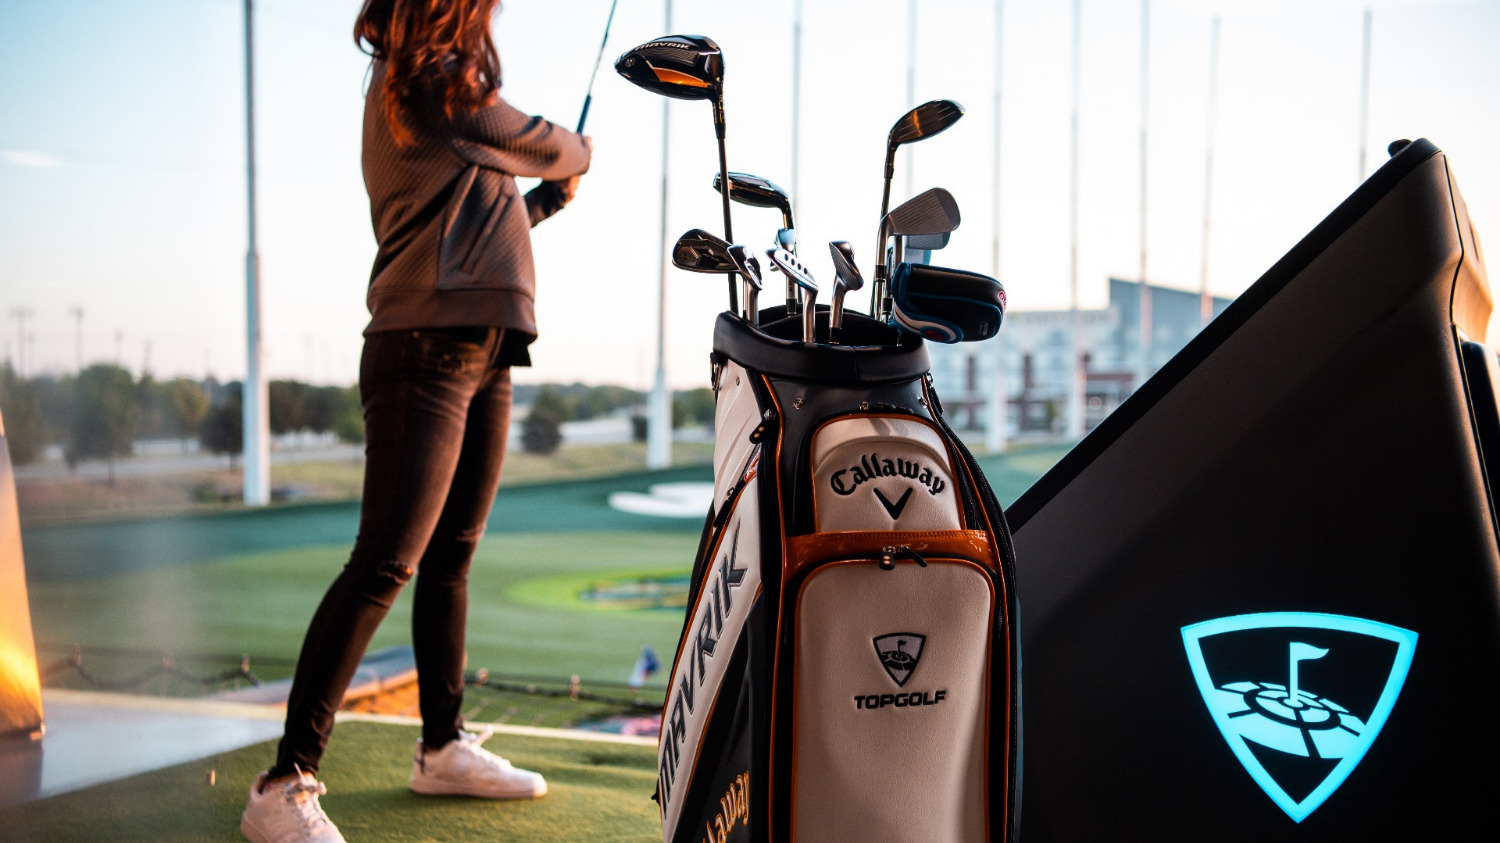 topgolf and callaway merge